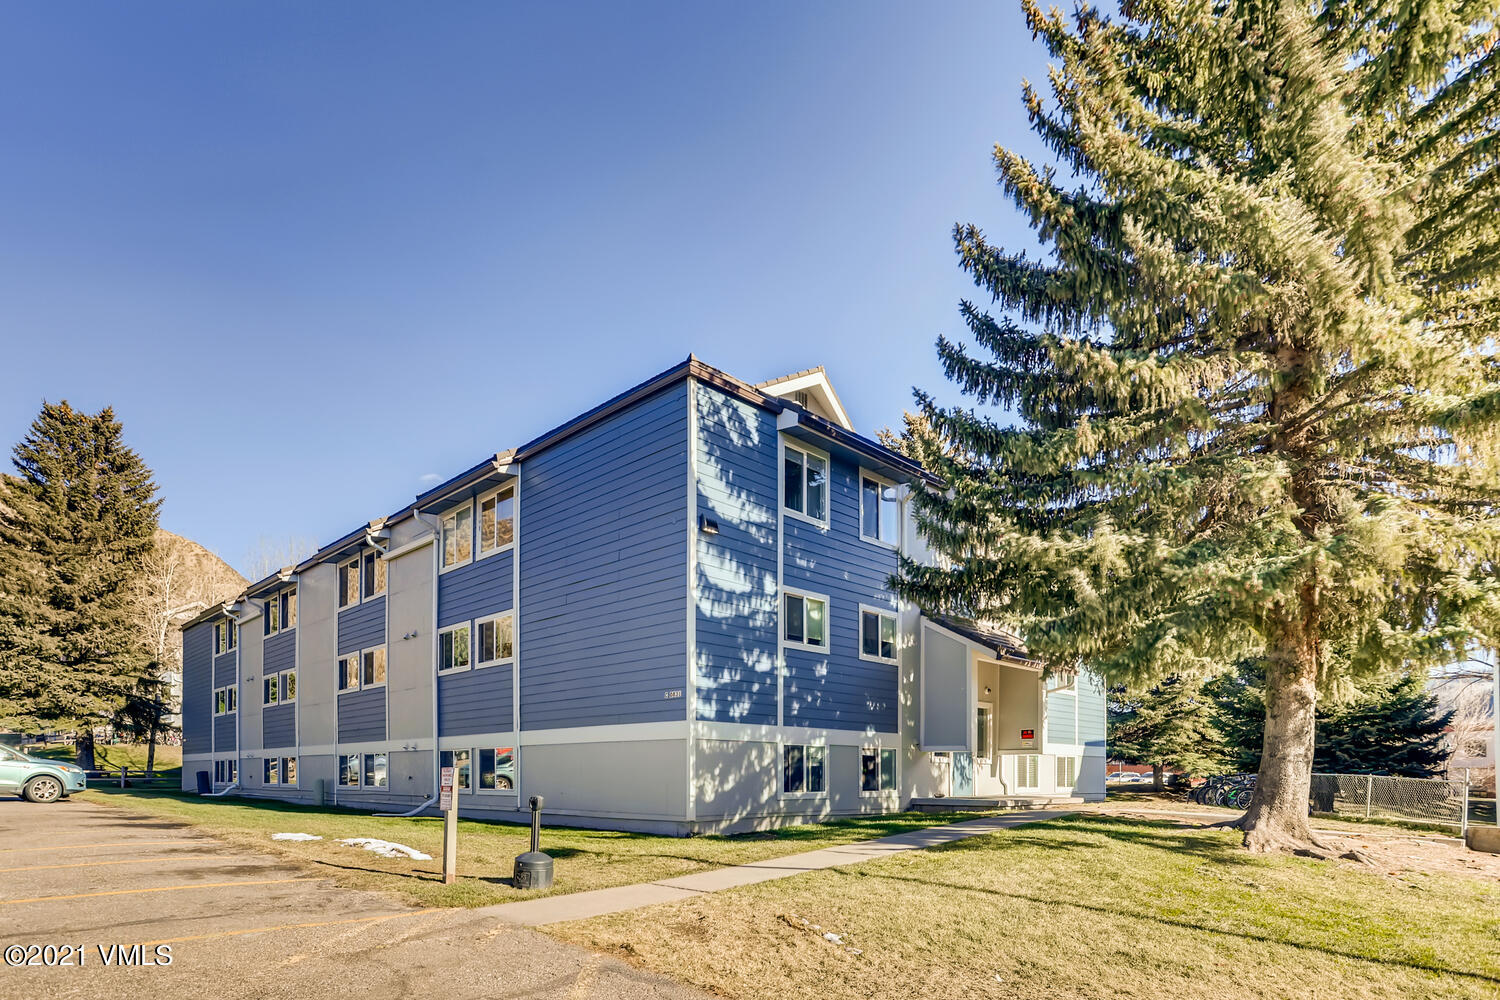 Get in before it is gone ! Fantastic opportunity to own 2BD / 1 BA corner unit in the town of Avon, walking distance to Nottingham lake, bike trails, restaurants and shops. Just minutes away from Beaver Creek mountain and 12 min from Vail ! The home qualifies for town of Avon MiCasa downpayment assistance program. Call for details!